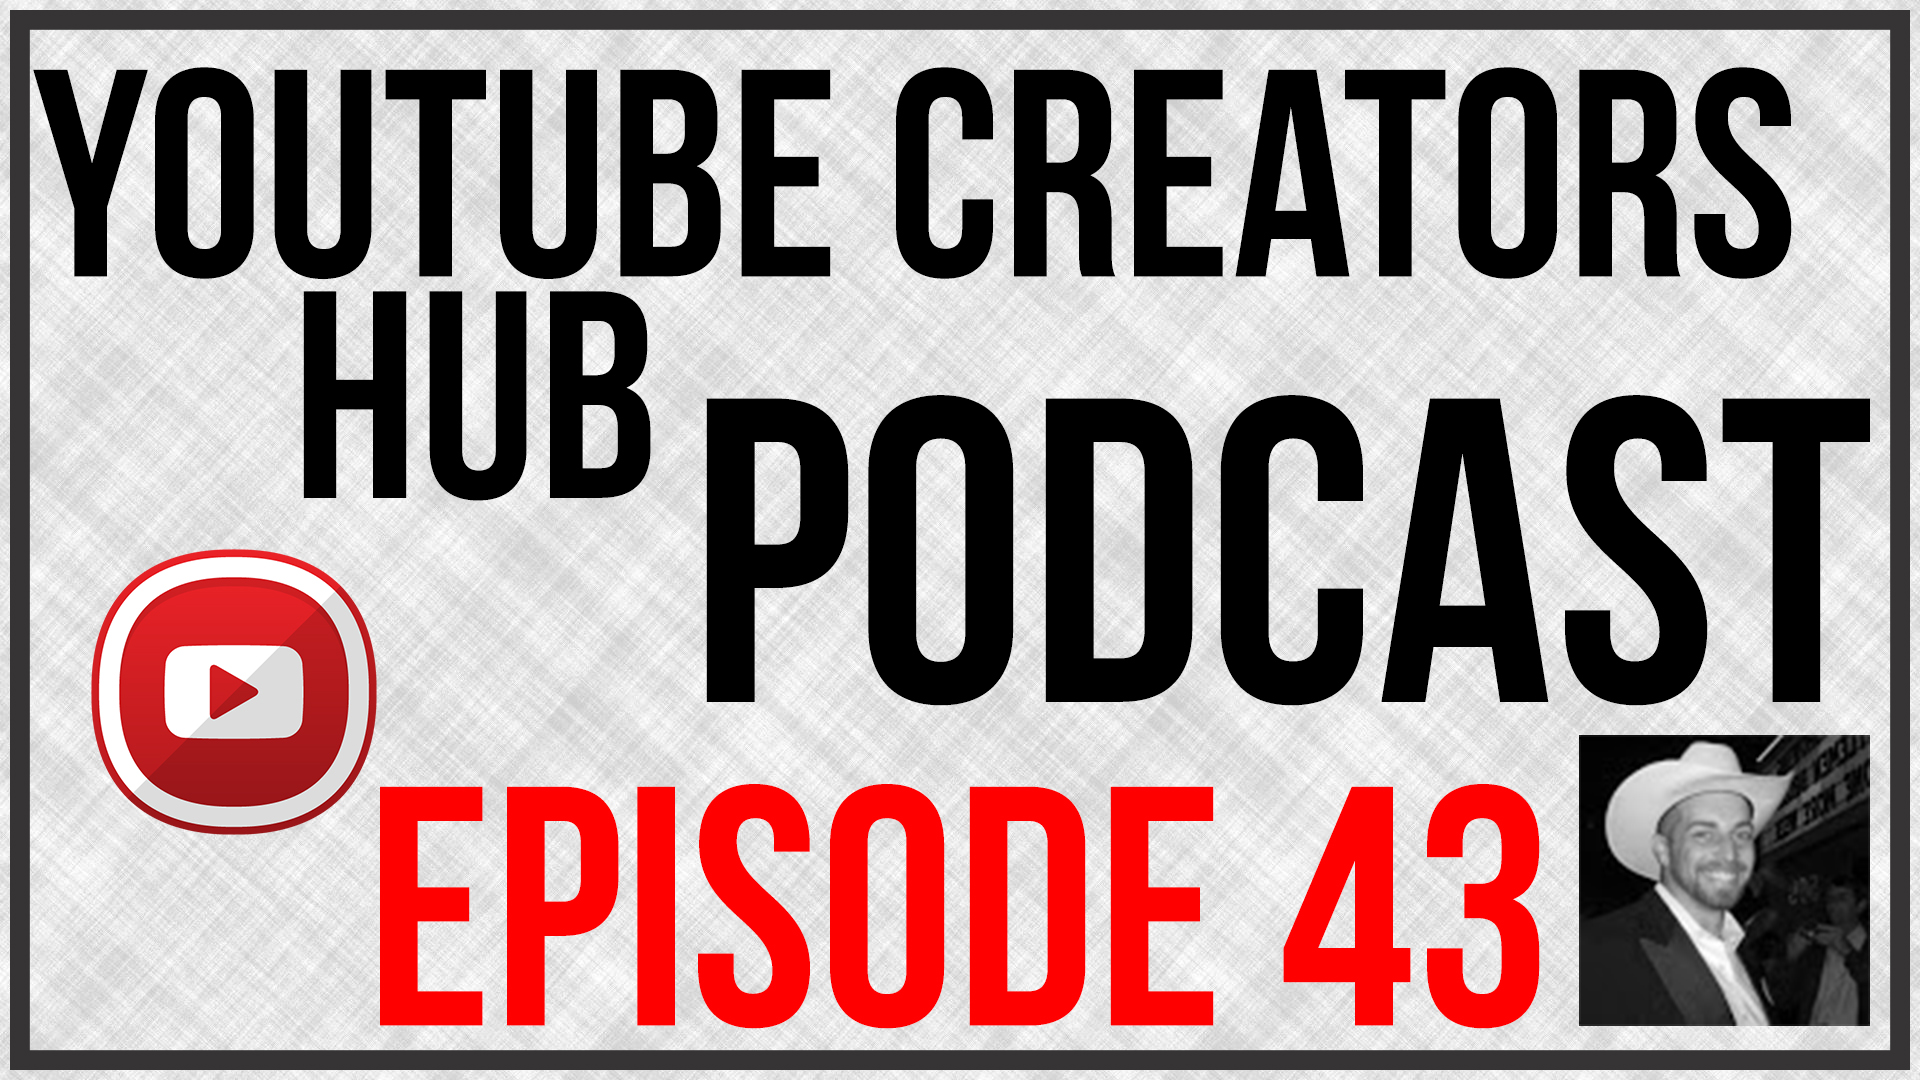 YouTube Creators Hub Podcast Episode 43